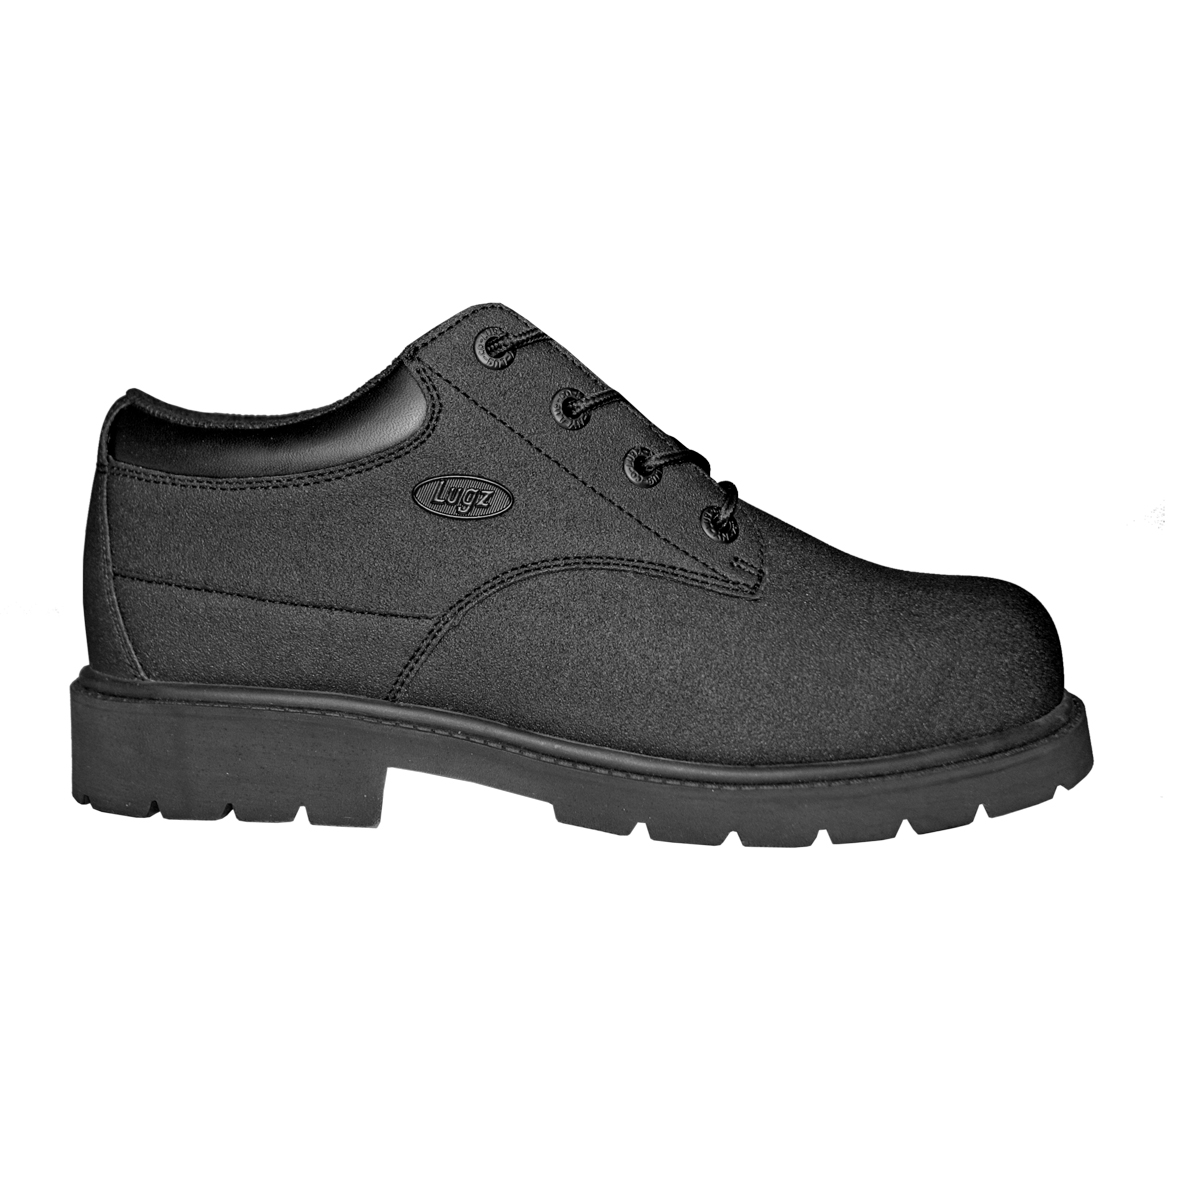 Lugz Drifter LO Scuff Prf Steel Toe Mens Boot Black